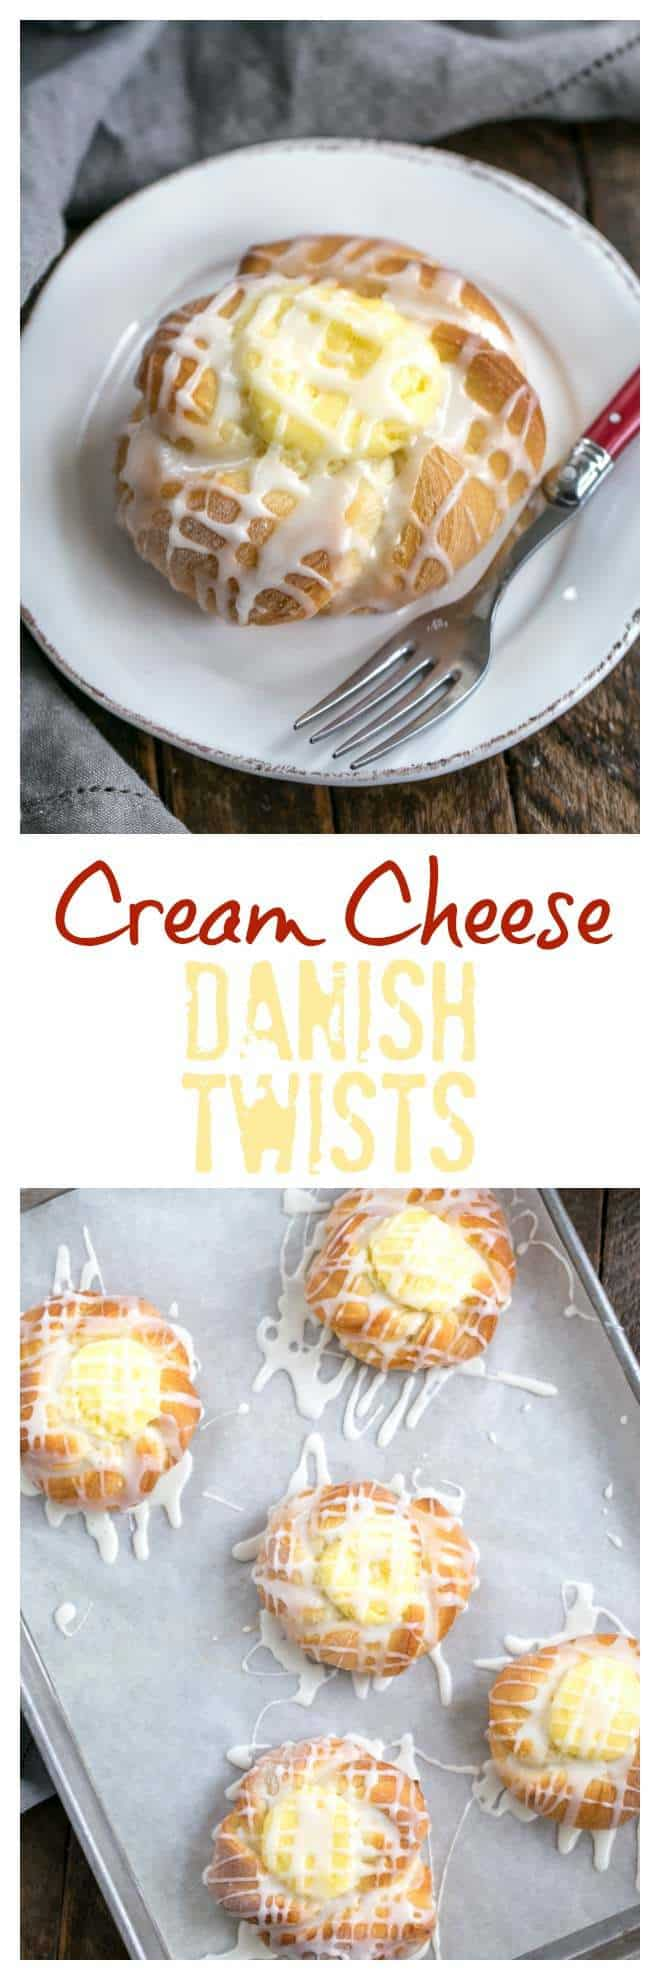 Danish Twists with Cream Cheese Filling - tender, sweet yeast bread twists with a luscious cream cheese filling #breakfast #brunch #danish #creamcheese